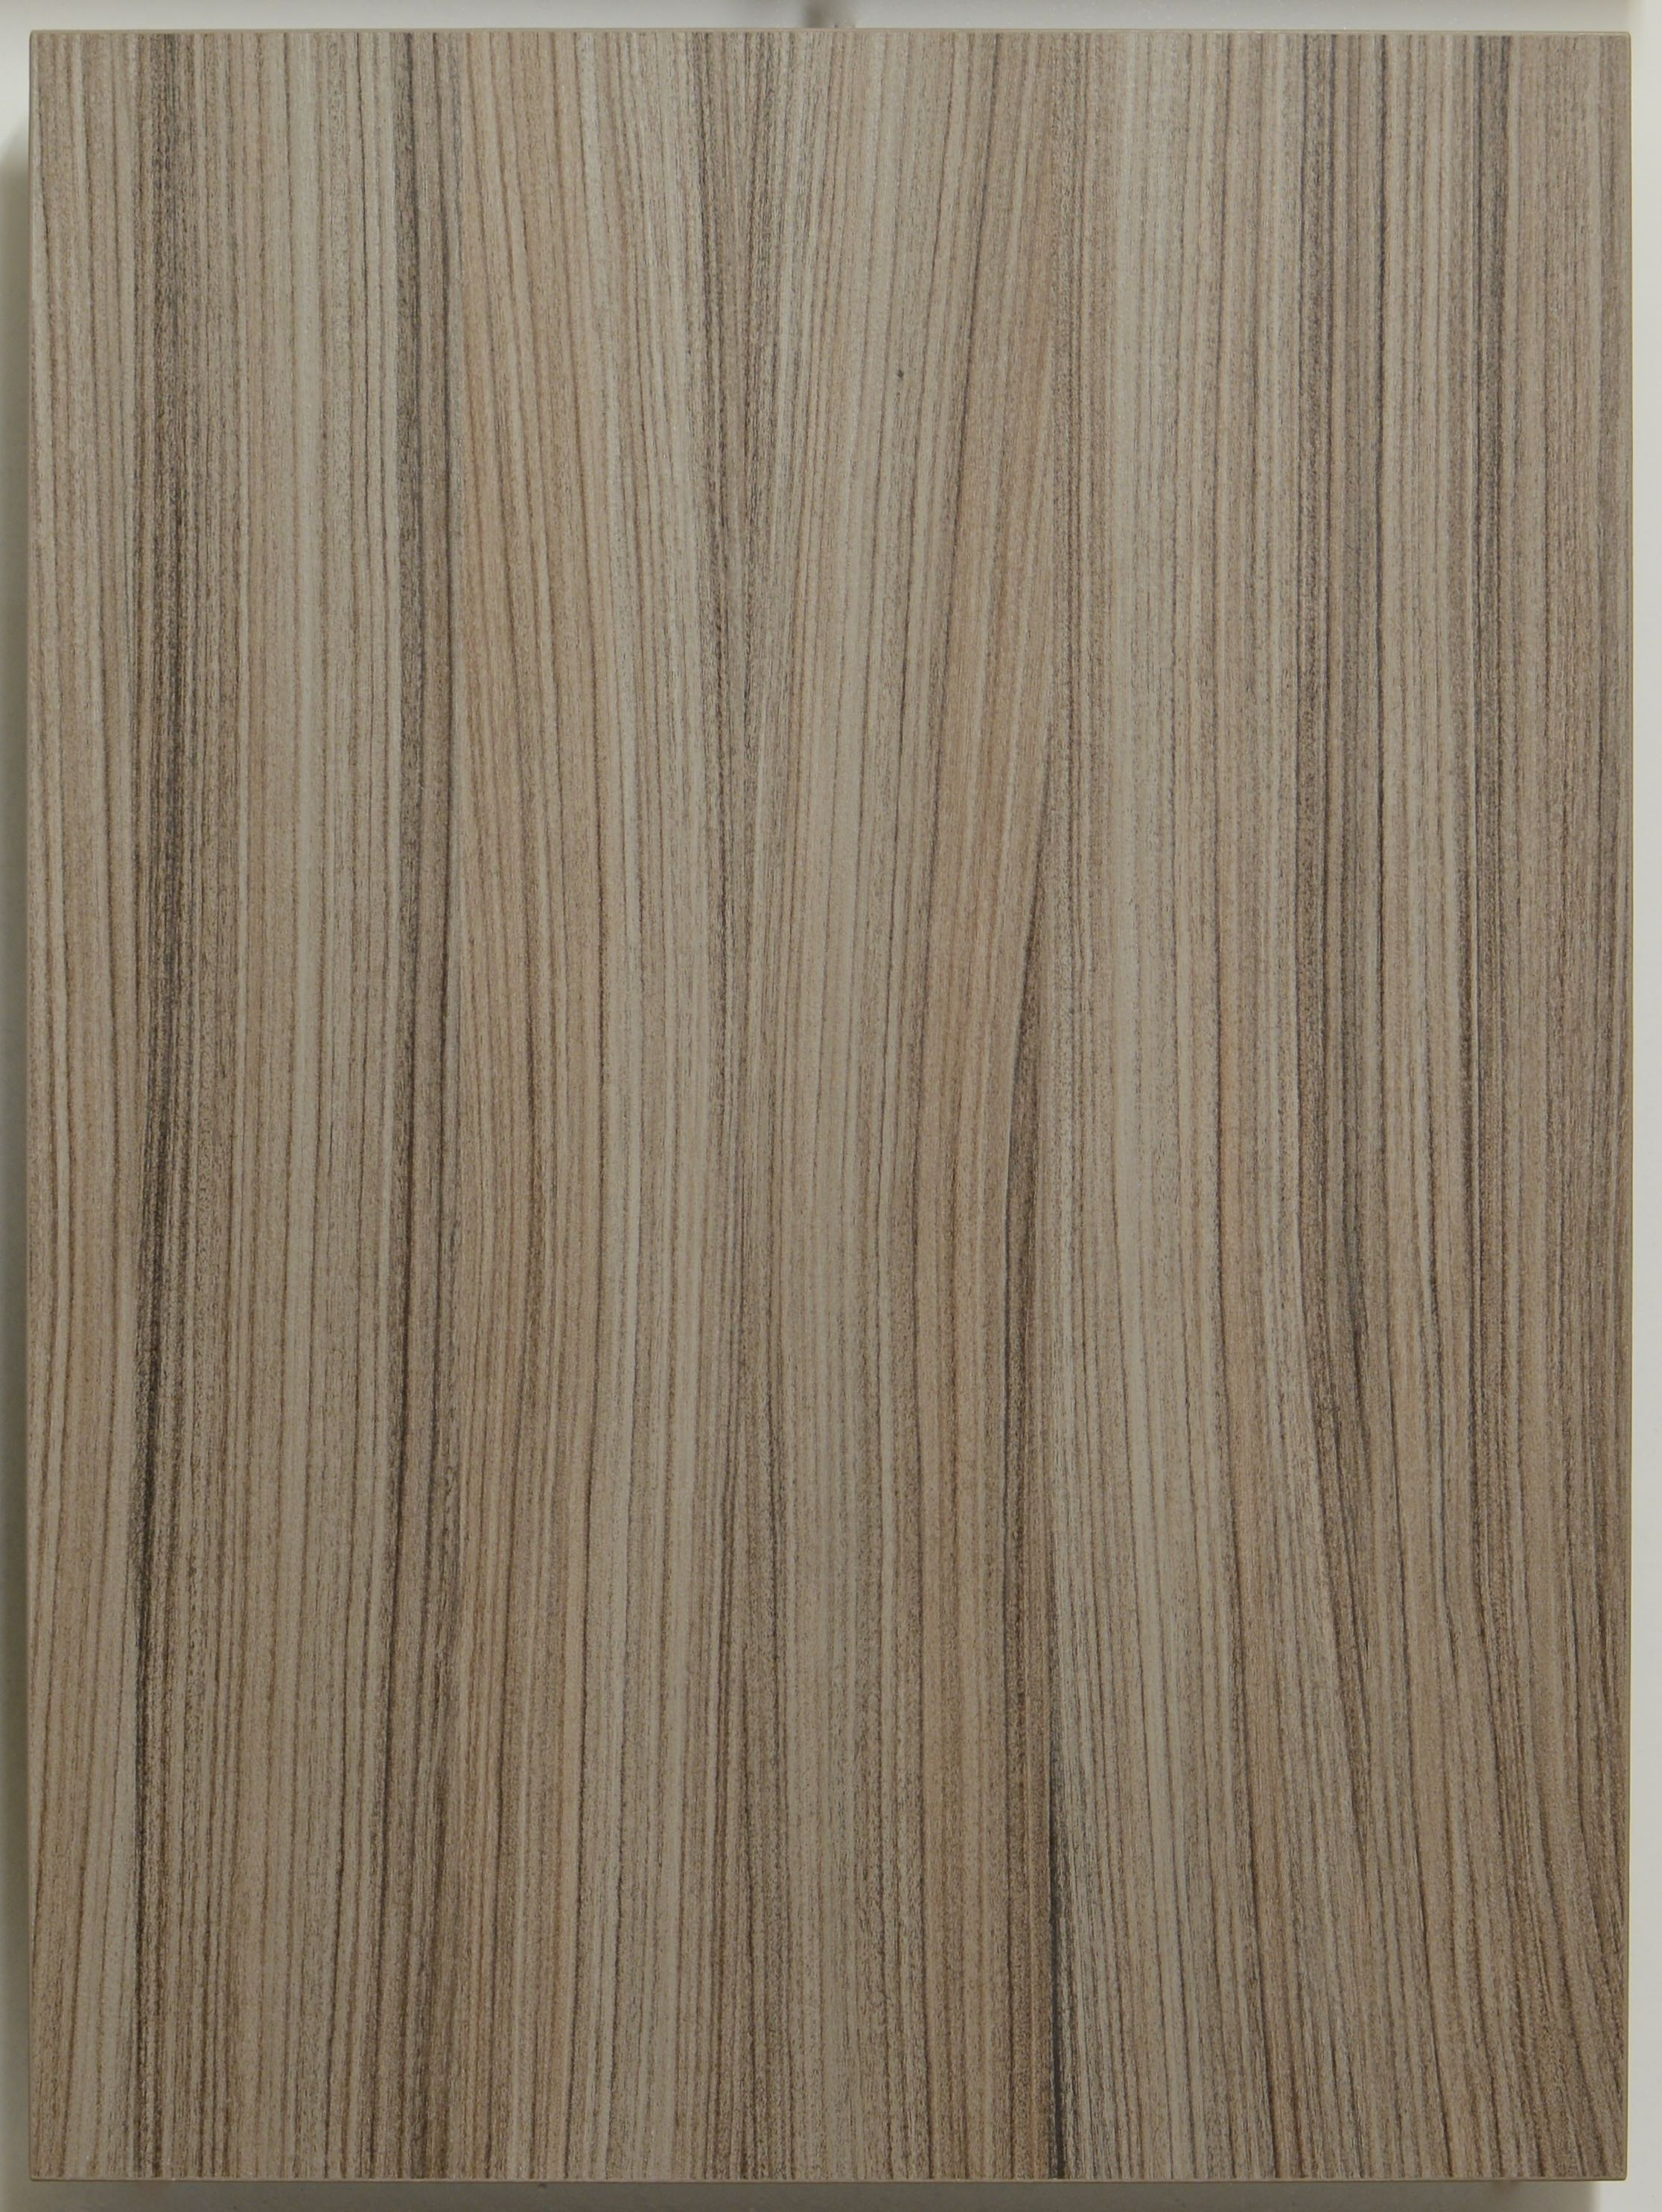 Textured Laminate Kitchen Cabinet Door Lk55 Etobicoke